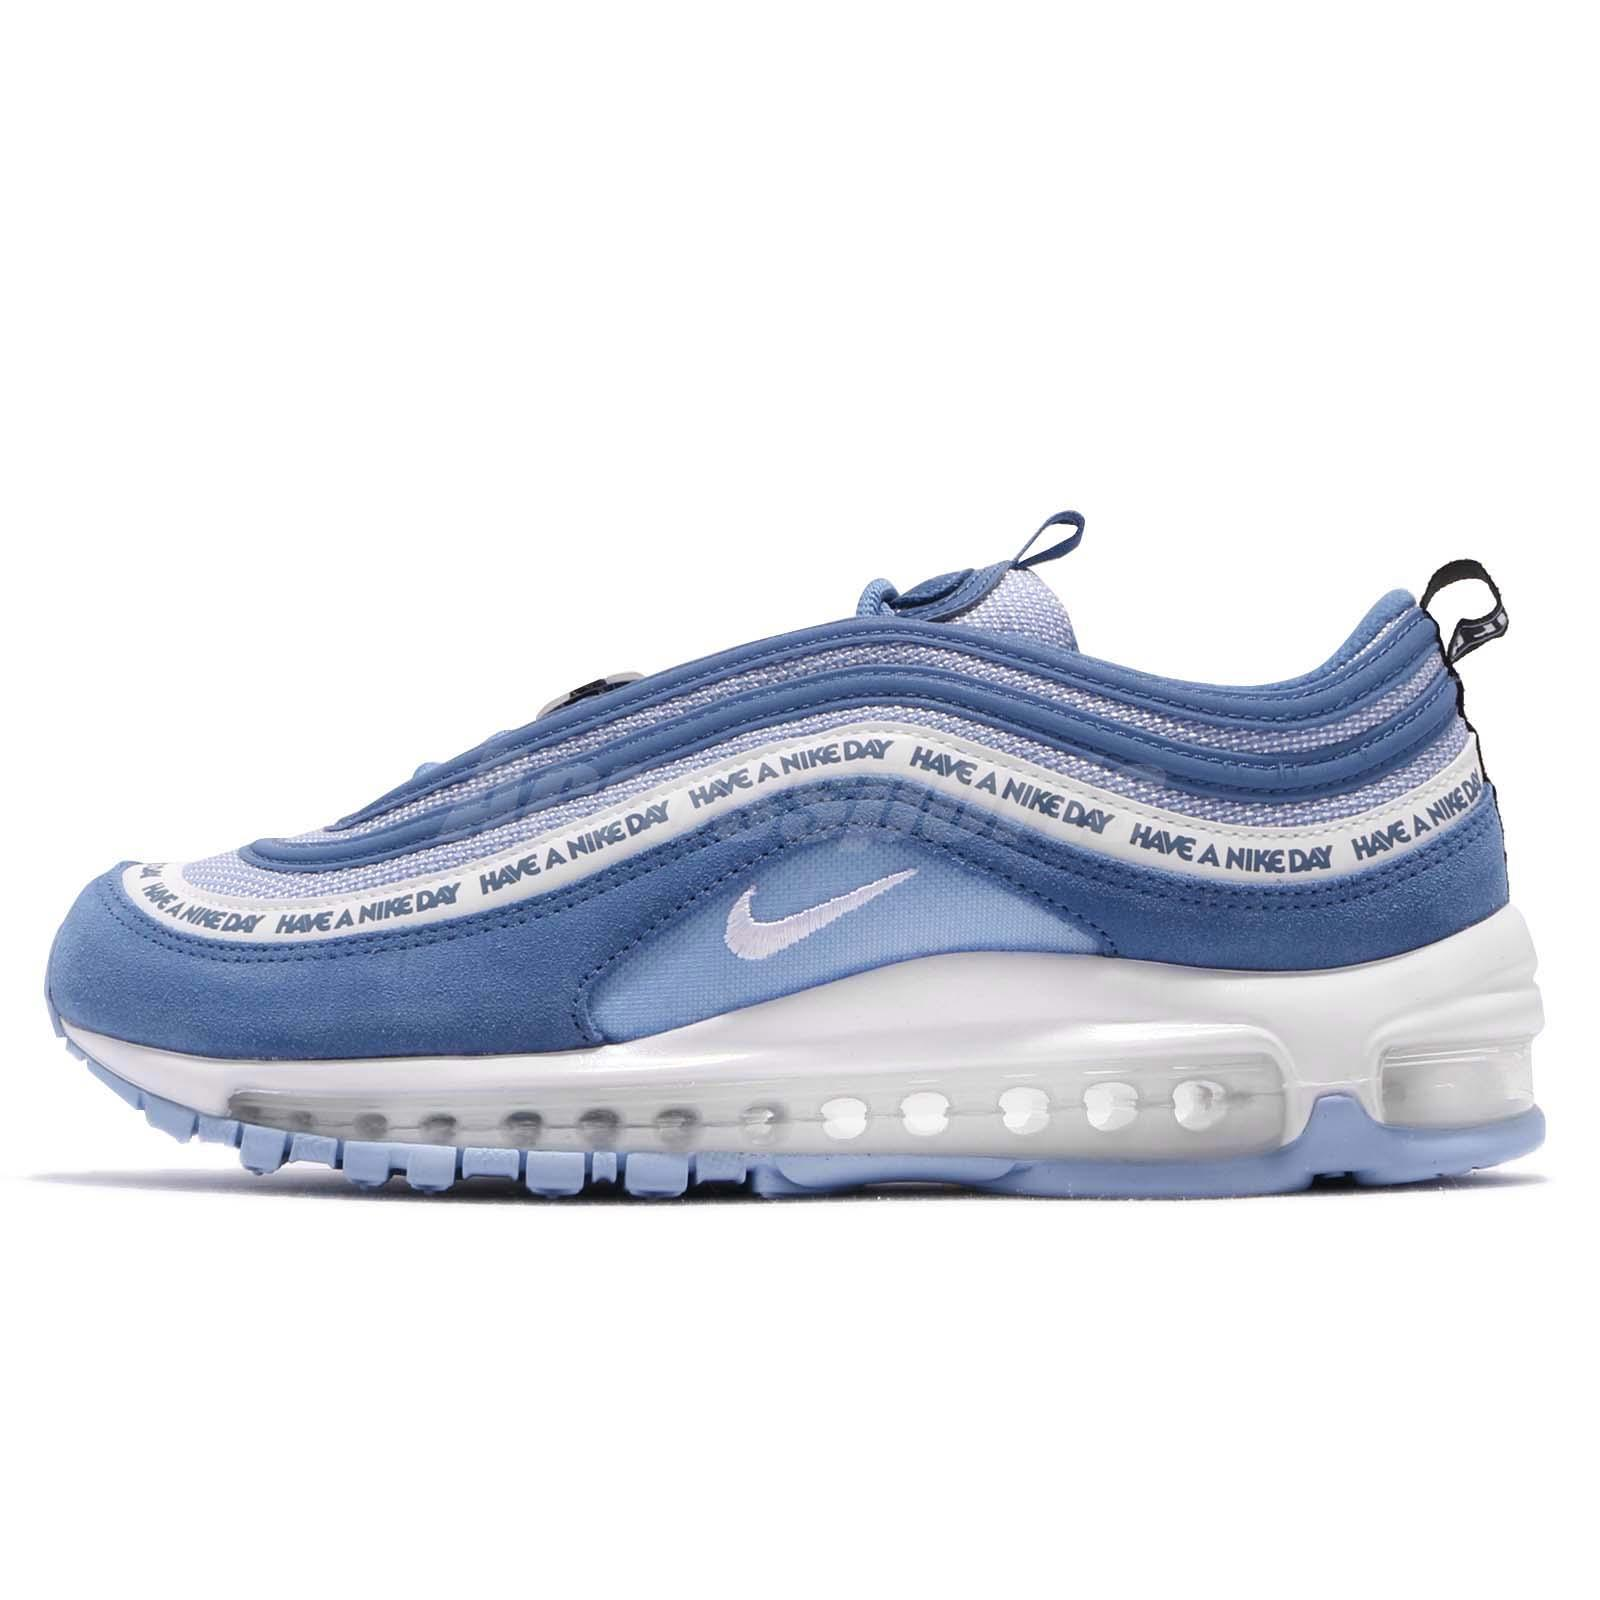 cdfccecfa62 Nike Air Max 97 ND Have A Nike Day Indigo Storm White Men Shoes BQ9130-400